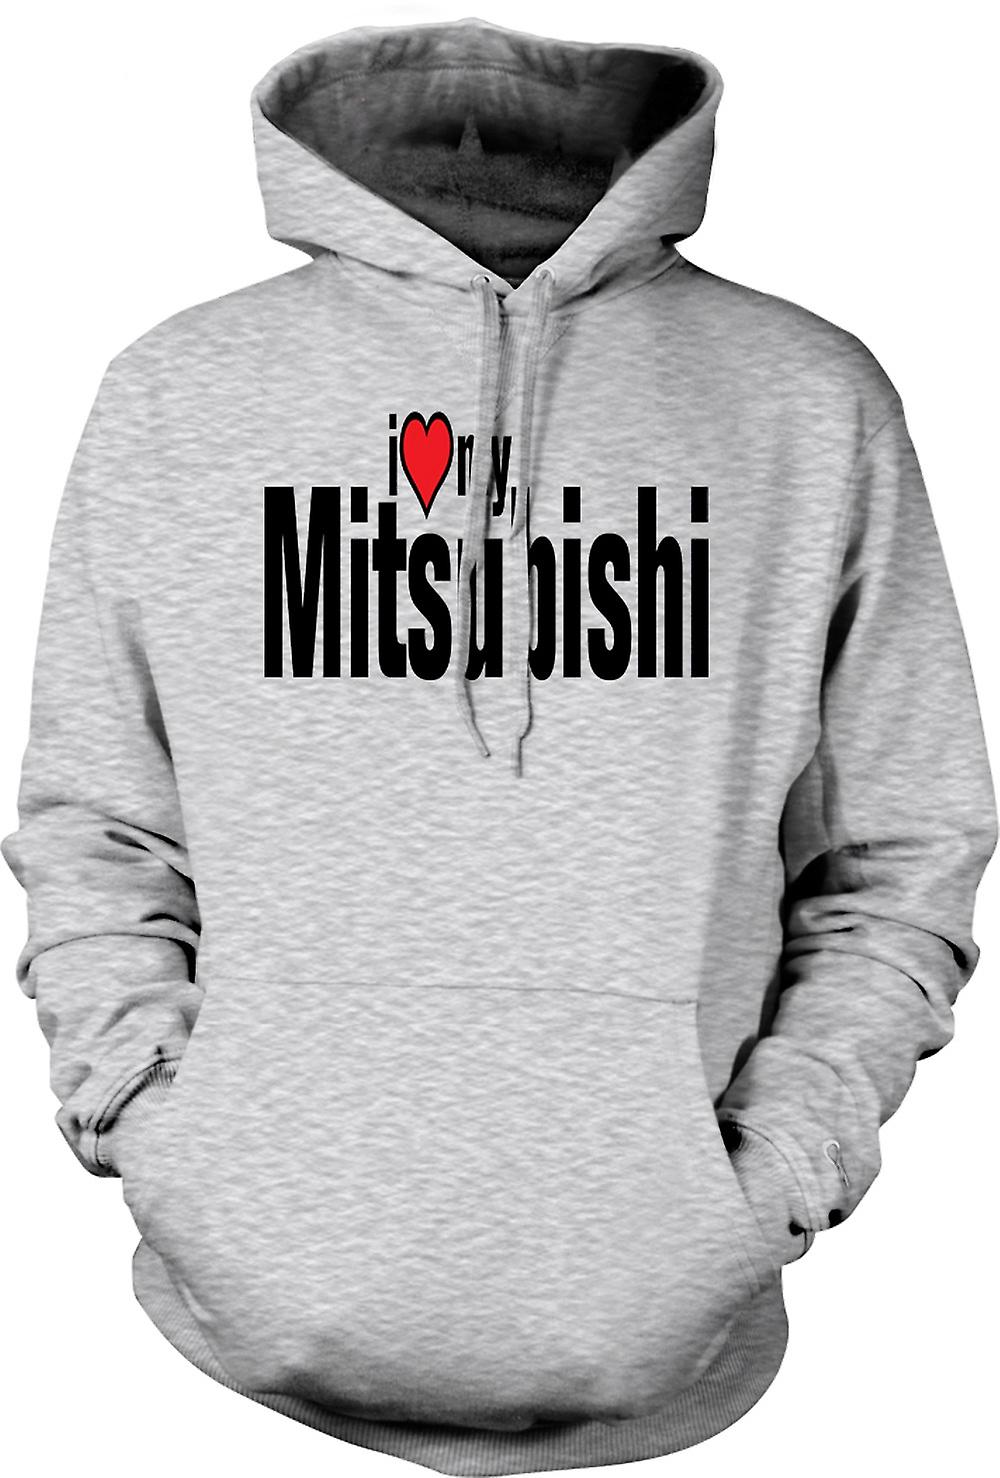 Mens Hoodie - I Love My Mitsubishi - Car Enthusiast